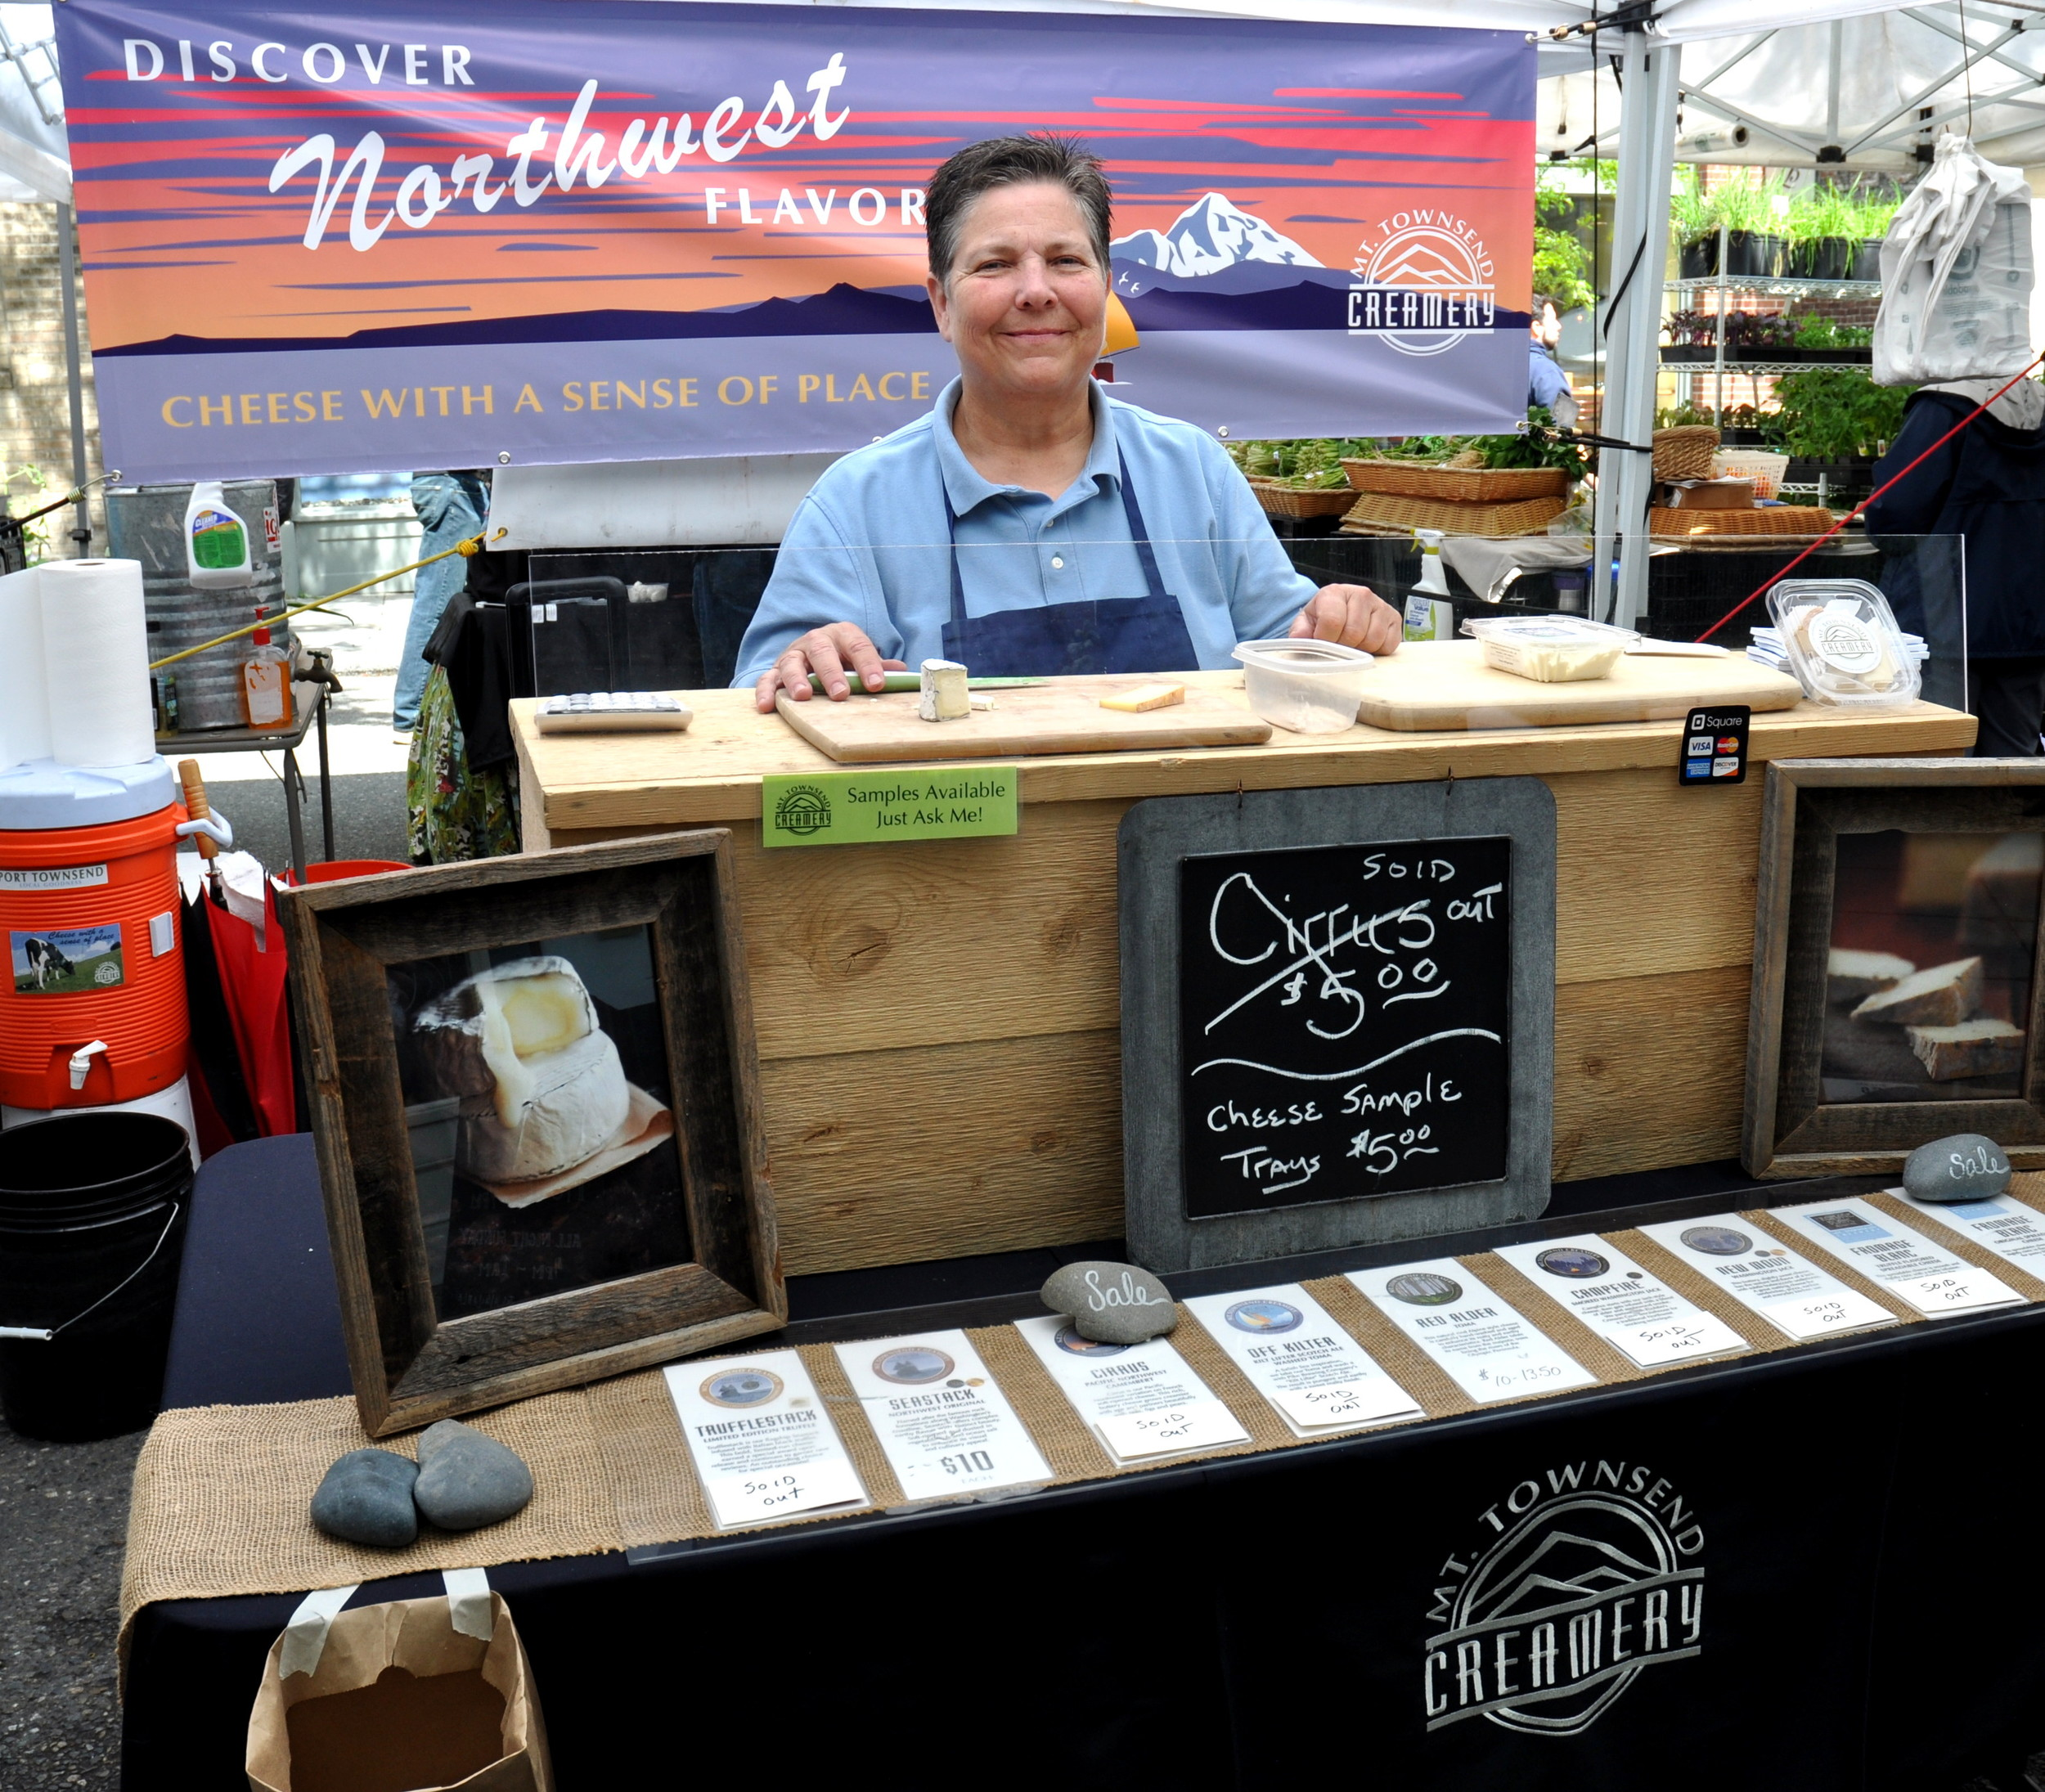 Brenda and the Mt Townsend Creamery display. Photo copyright 2013 by Zachary D. Lyons.